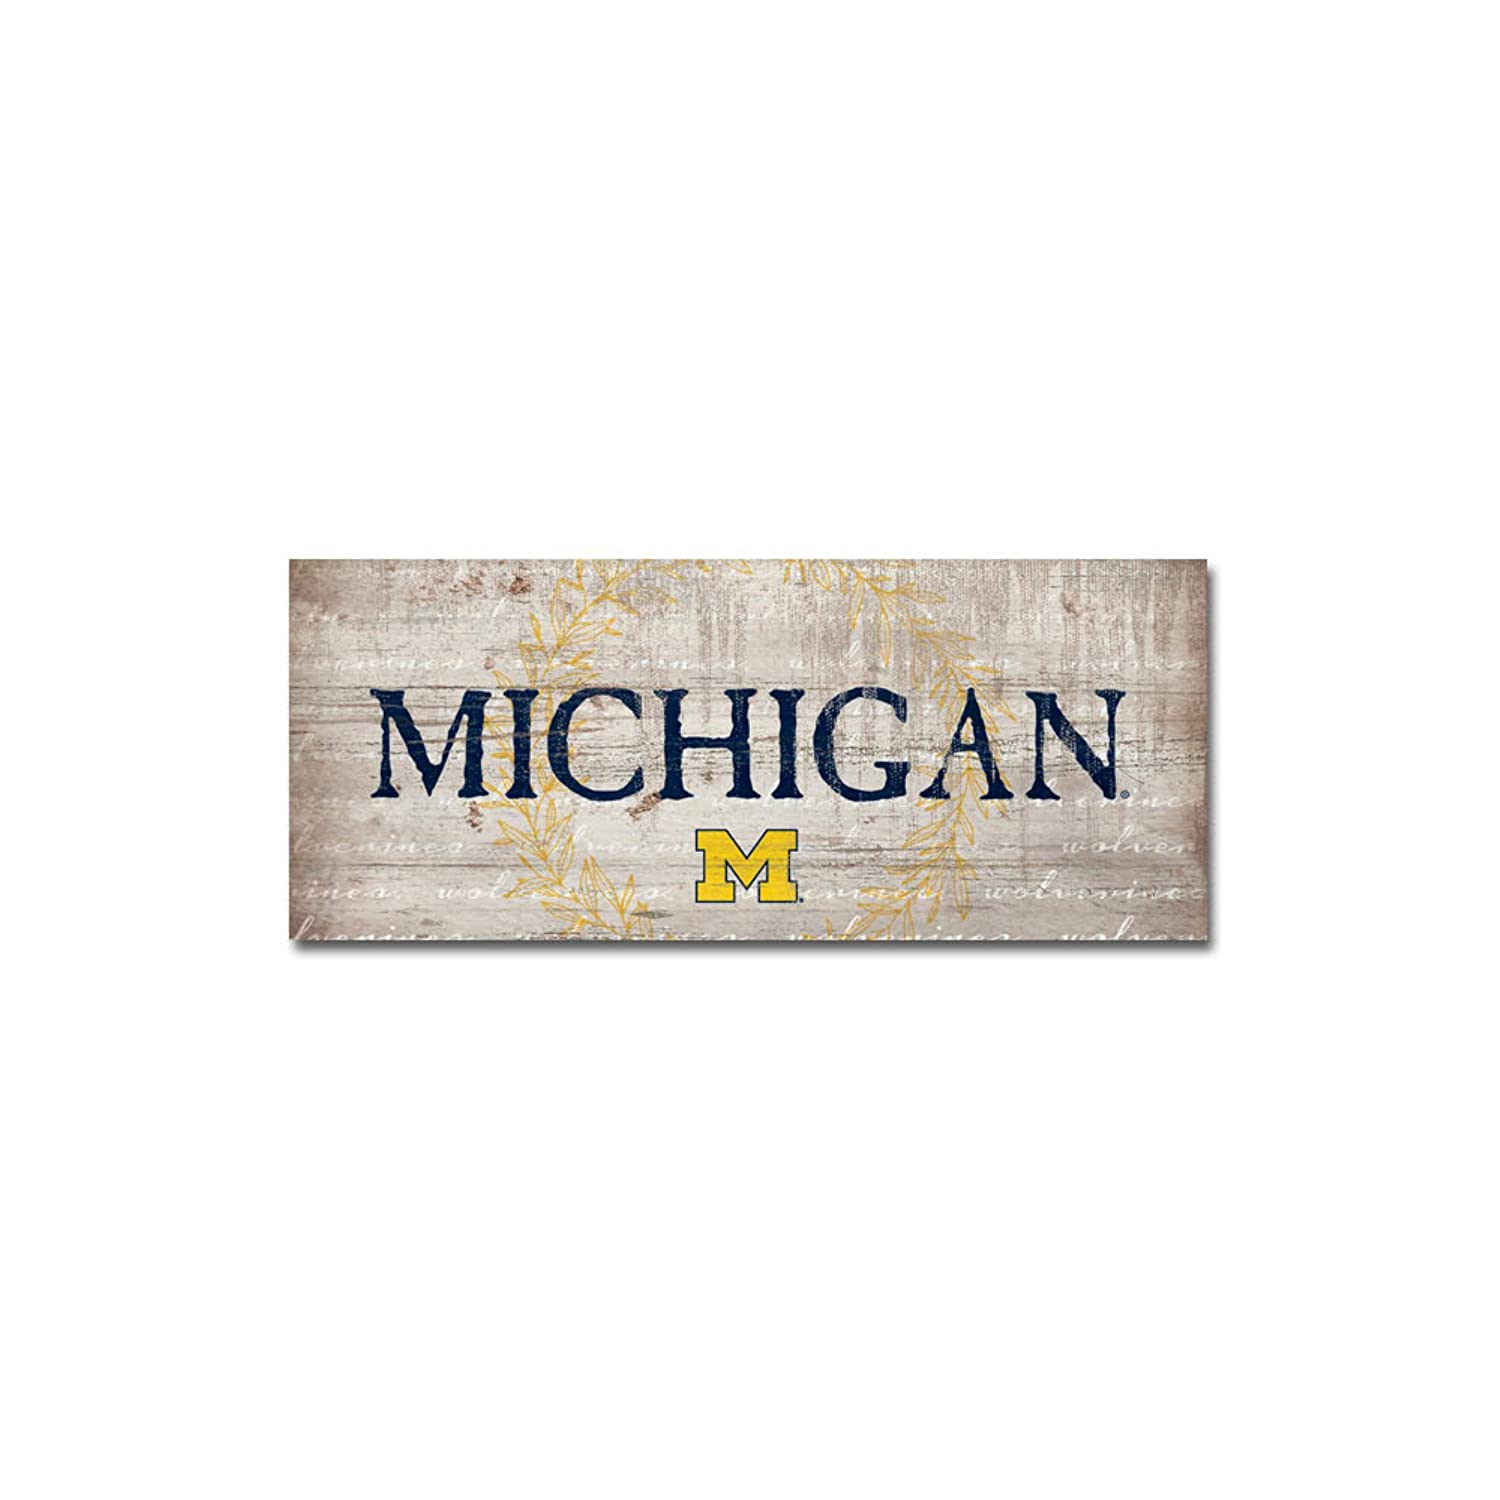 NCAA Fan Shop Michigan Wolverines Legacy Mini Table Top Stick 2.5x6 One Size Wood